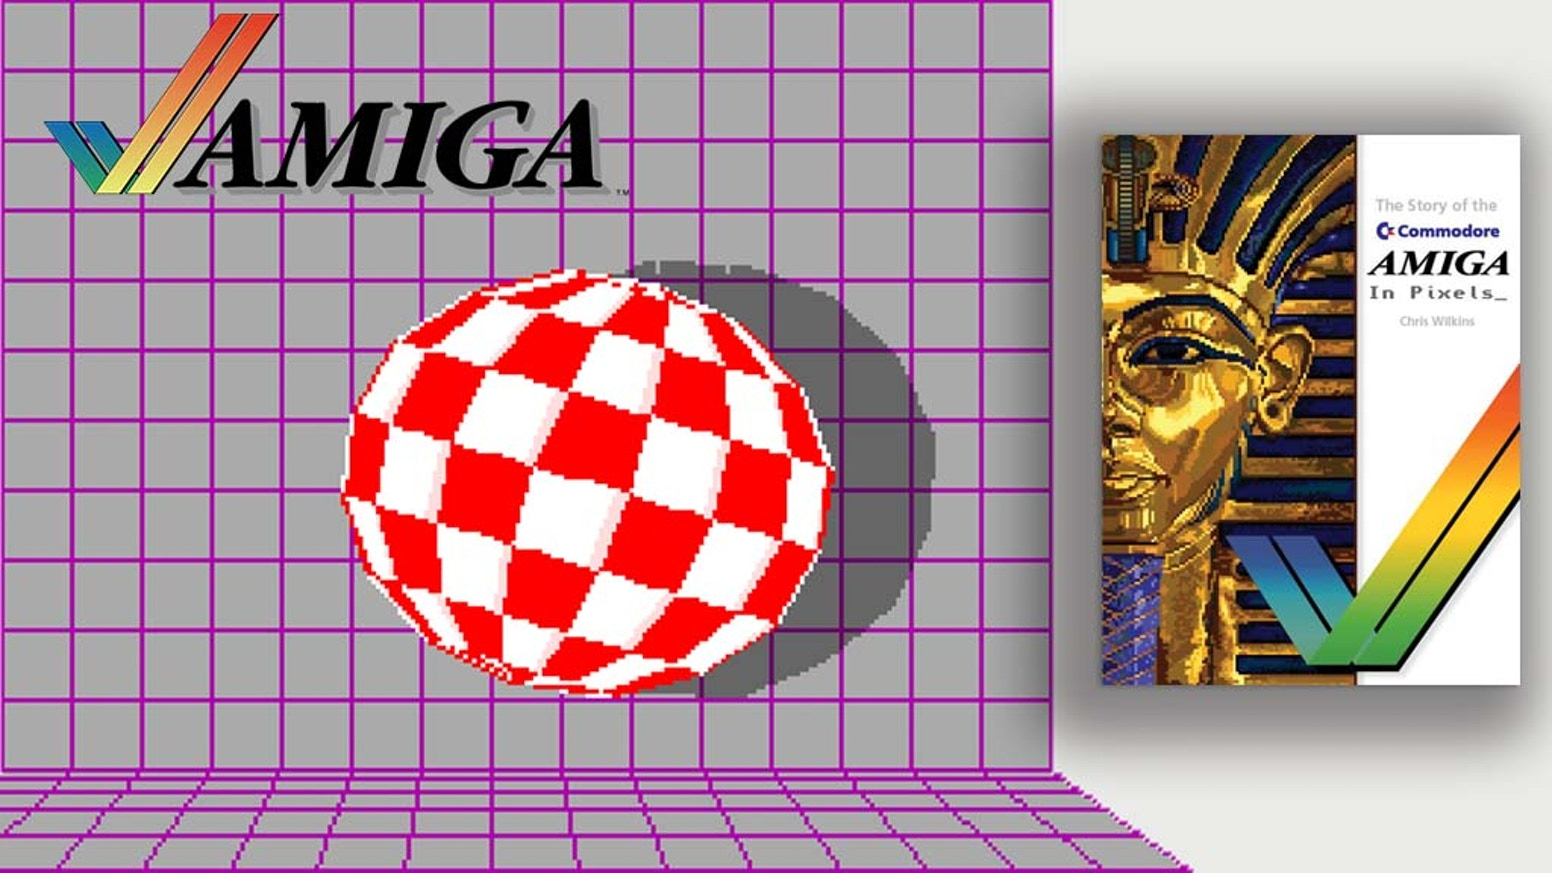 A high quality, 268 page book on the illustrious Commodore Amiga.